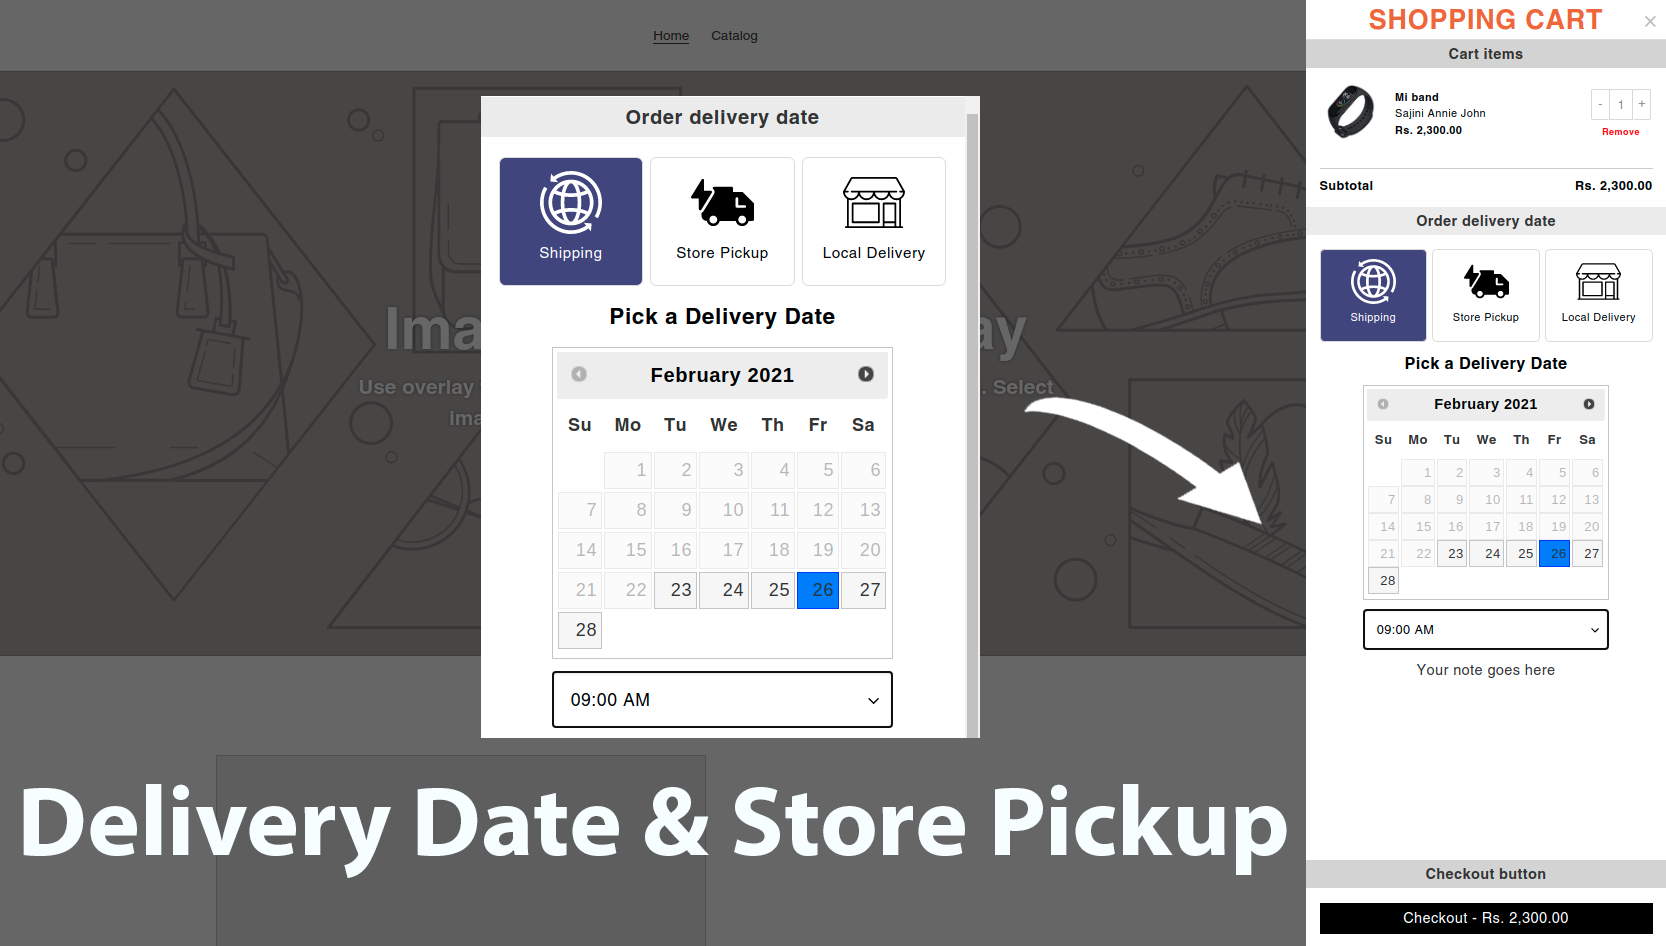 Delivery Date & Store Pickup